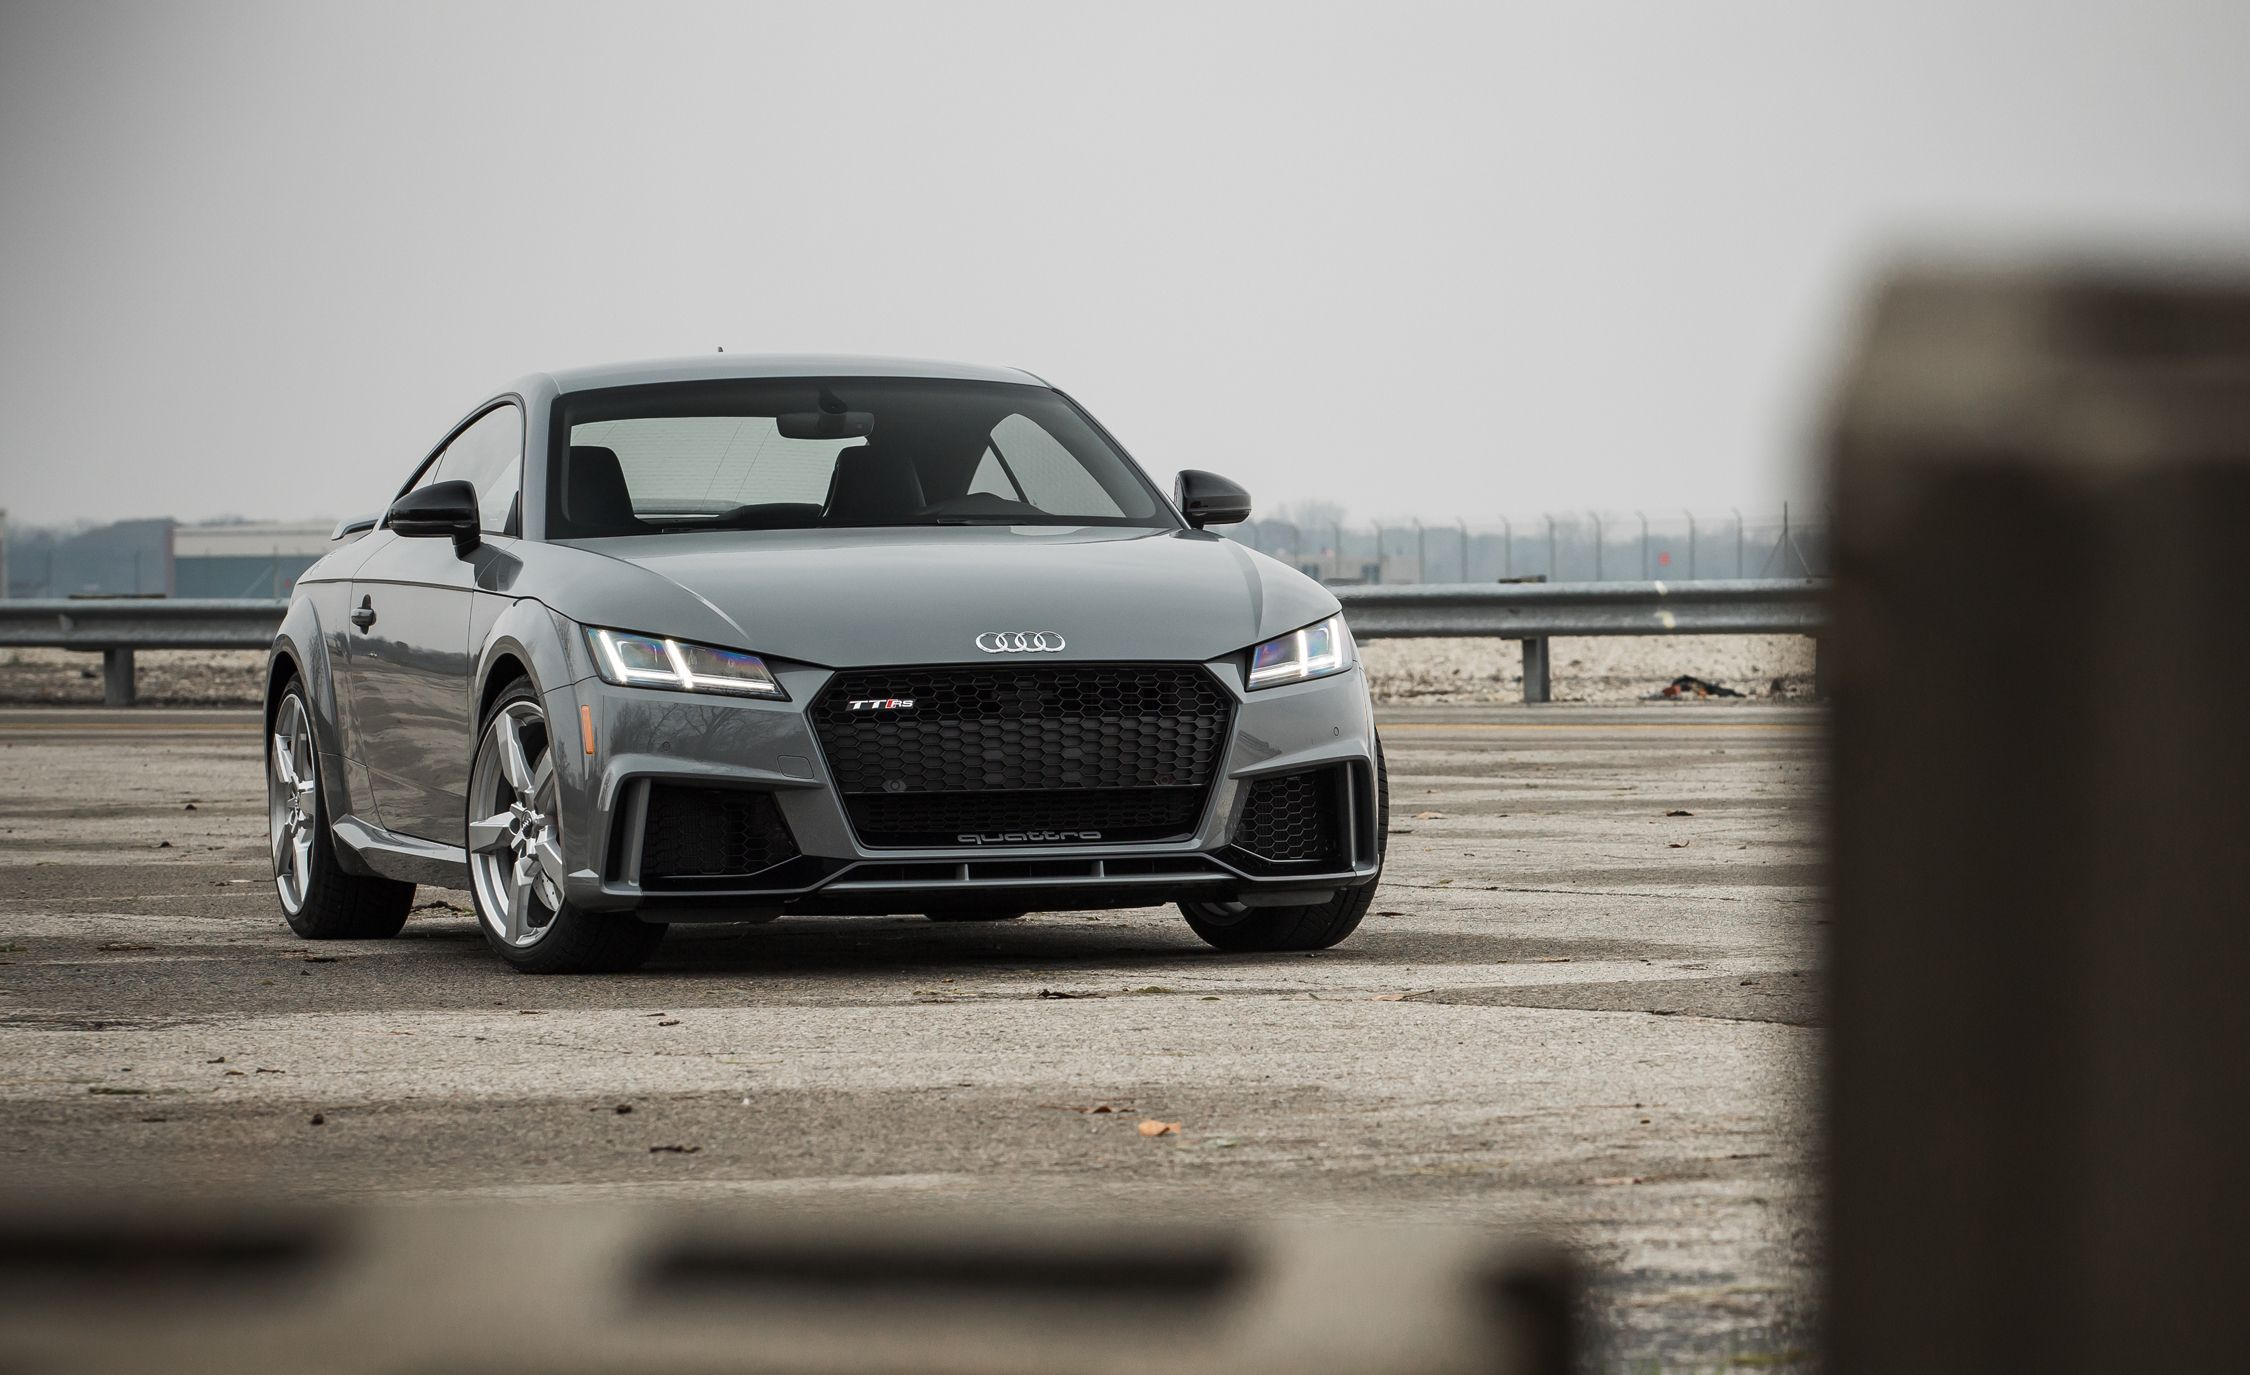 2018 audi tt rs coupe first drive review car and driver rh caranddriver com 2013 Audi TT RS Review 2013 Audi TT RS Review